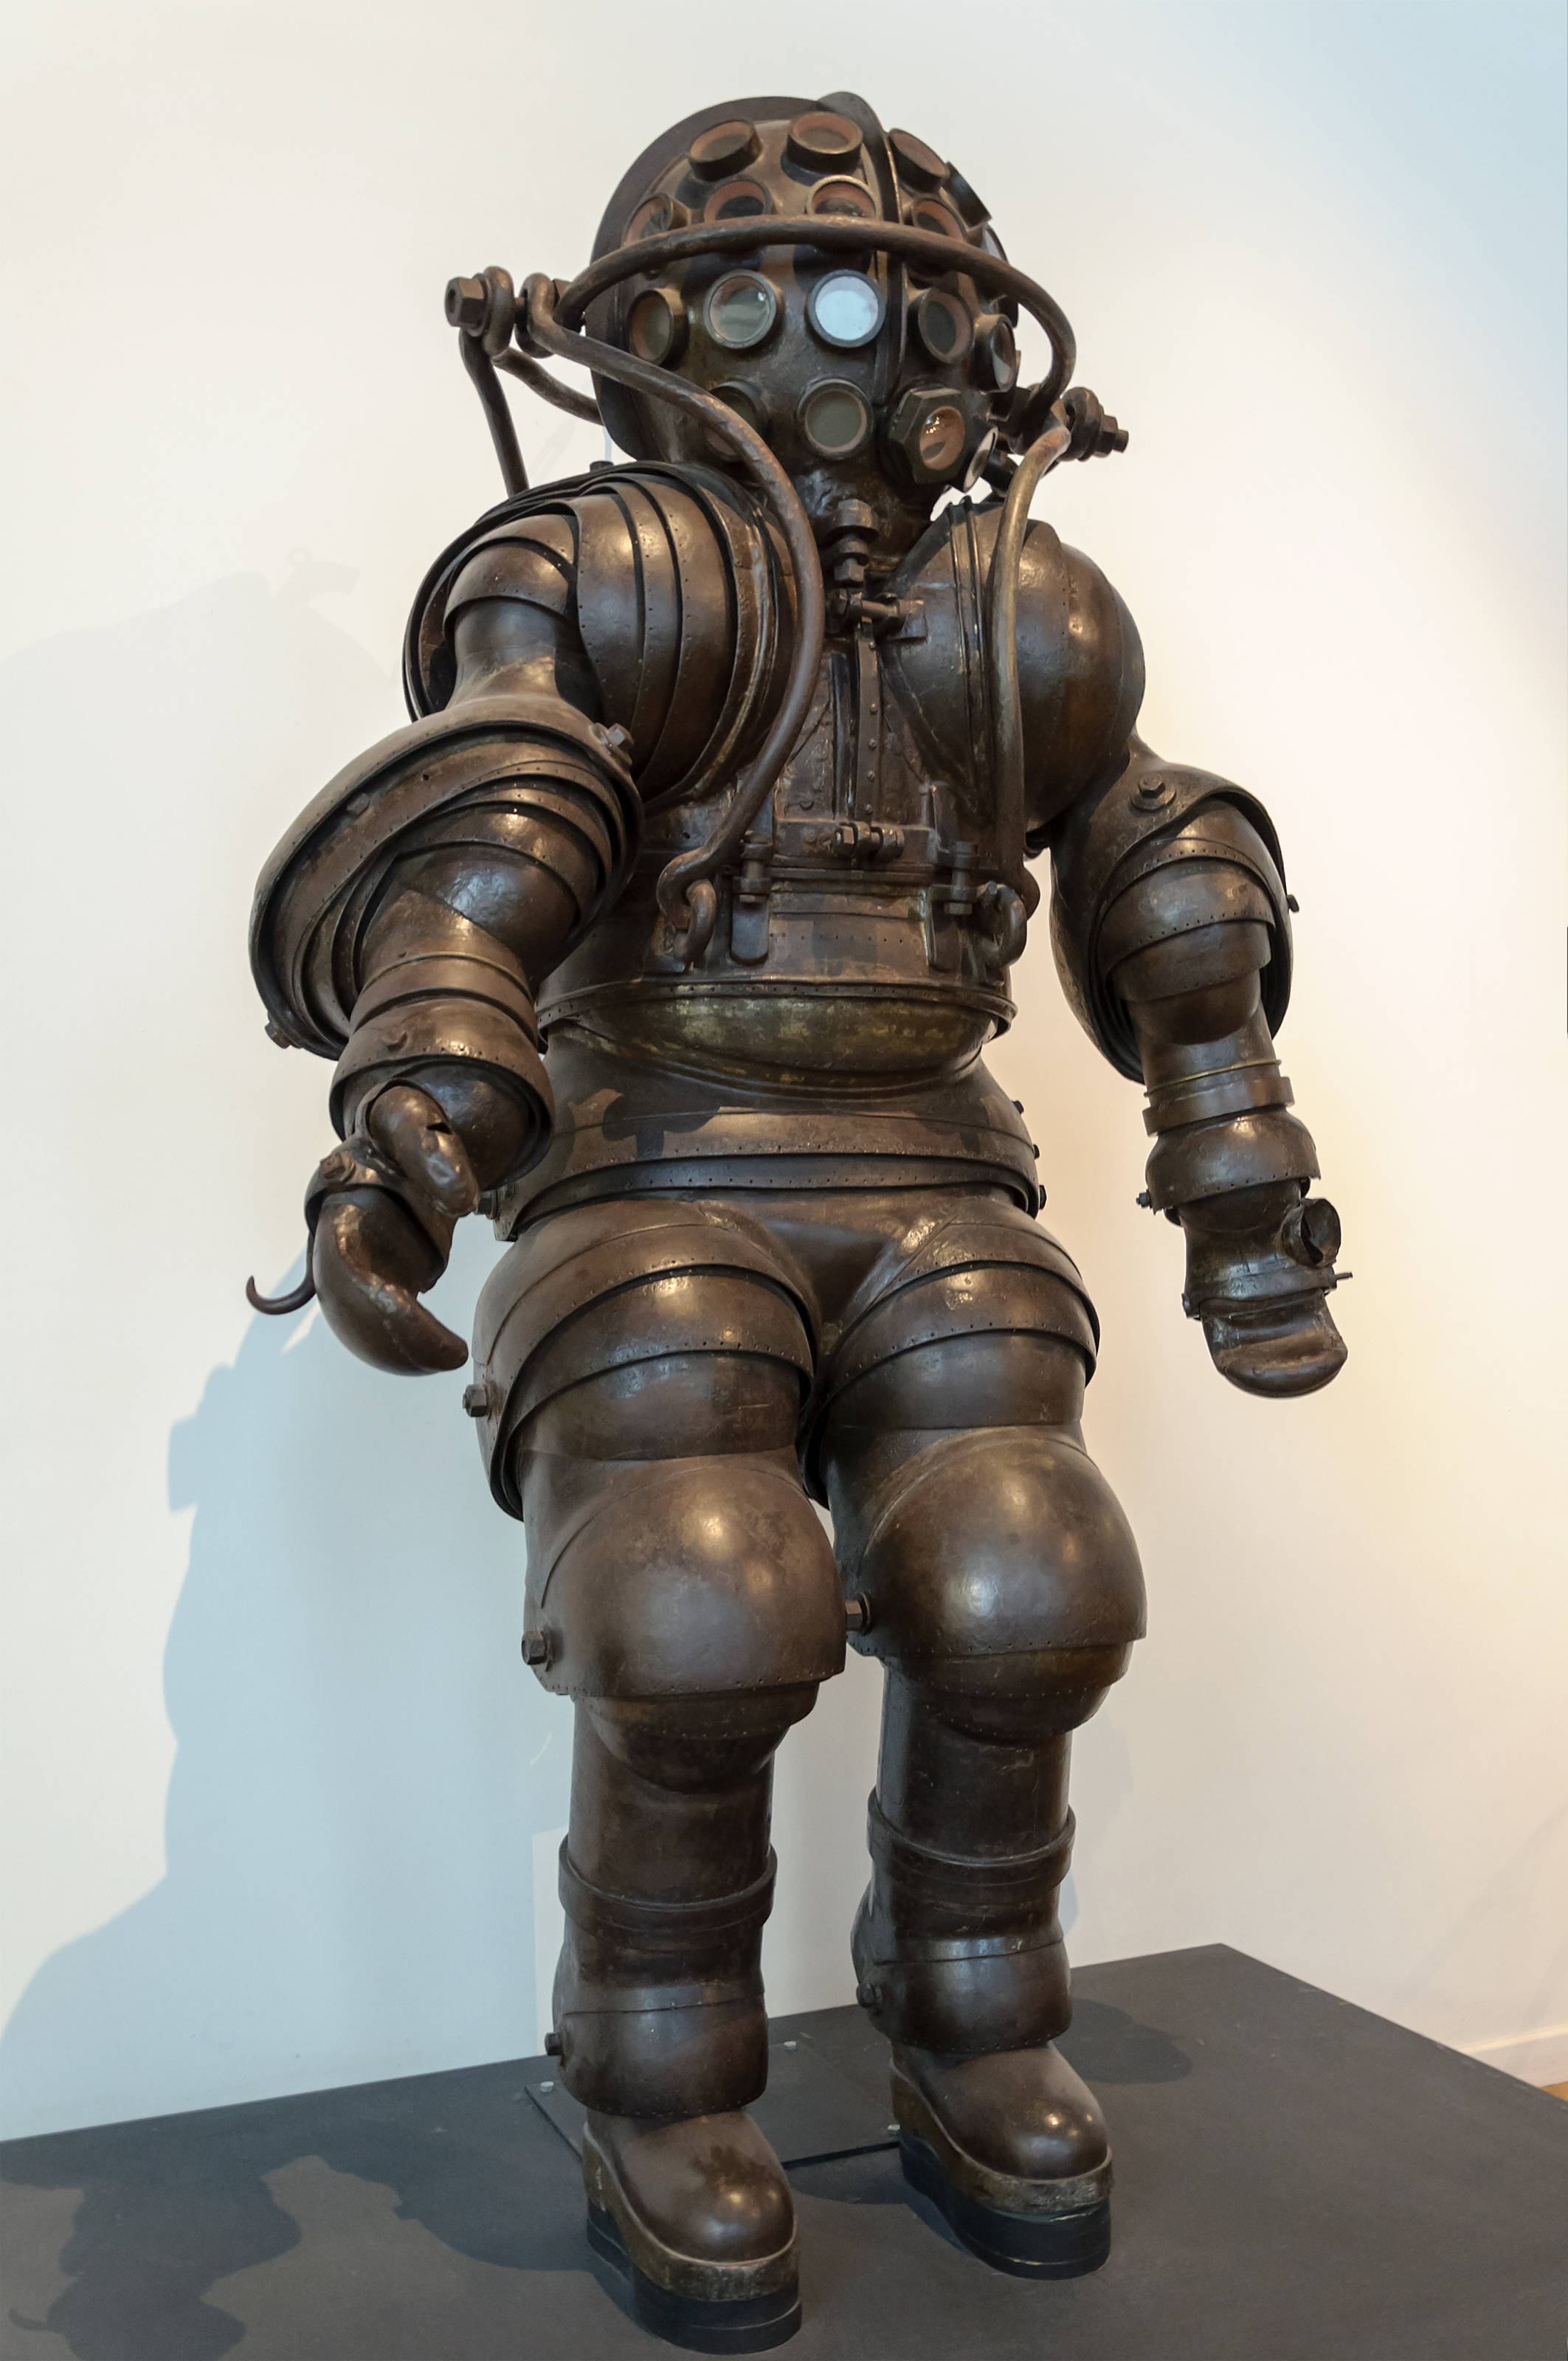 The first ADS or atmospheric diving suit